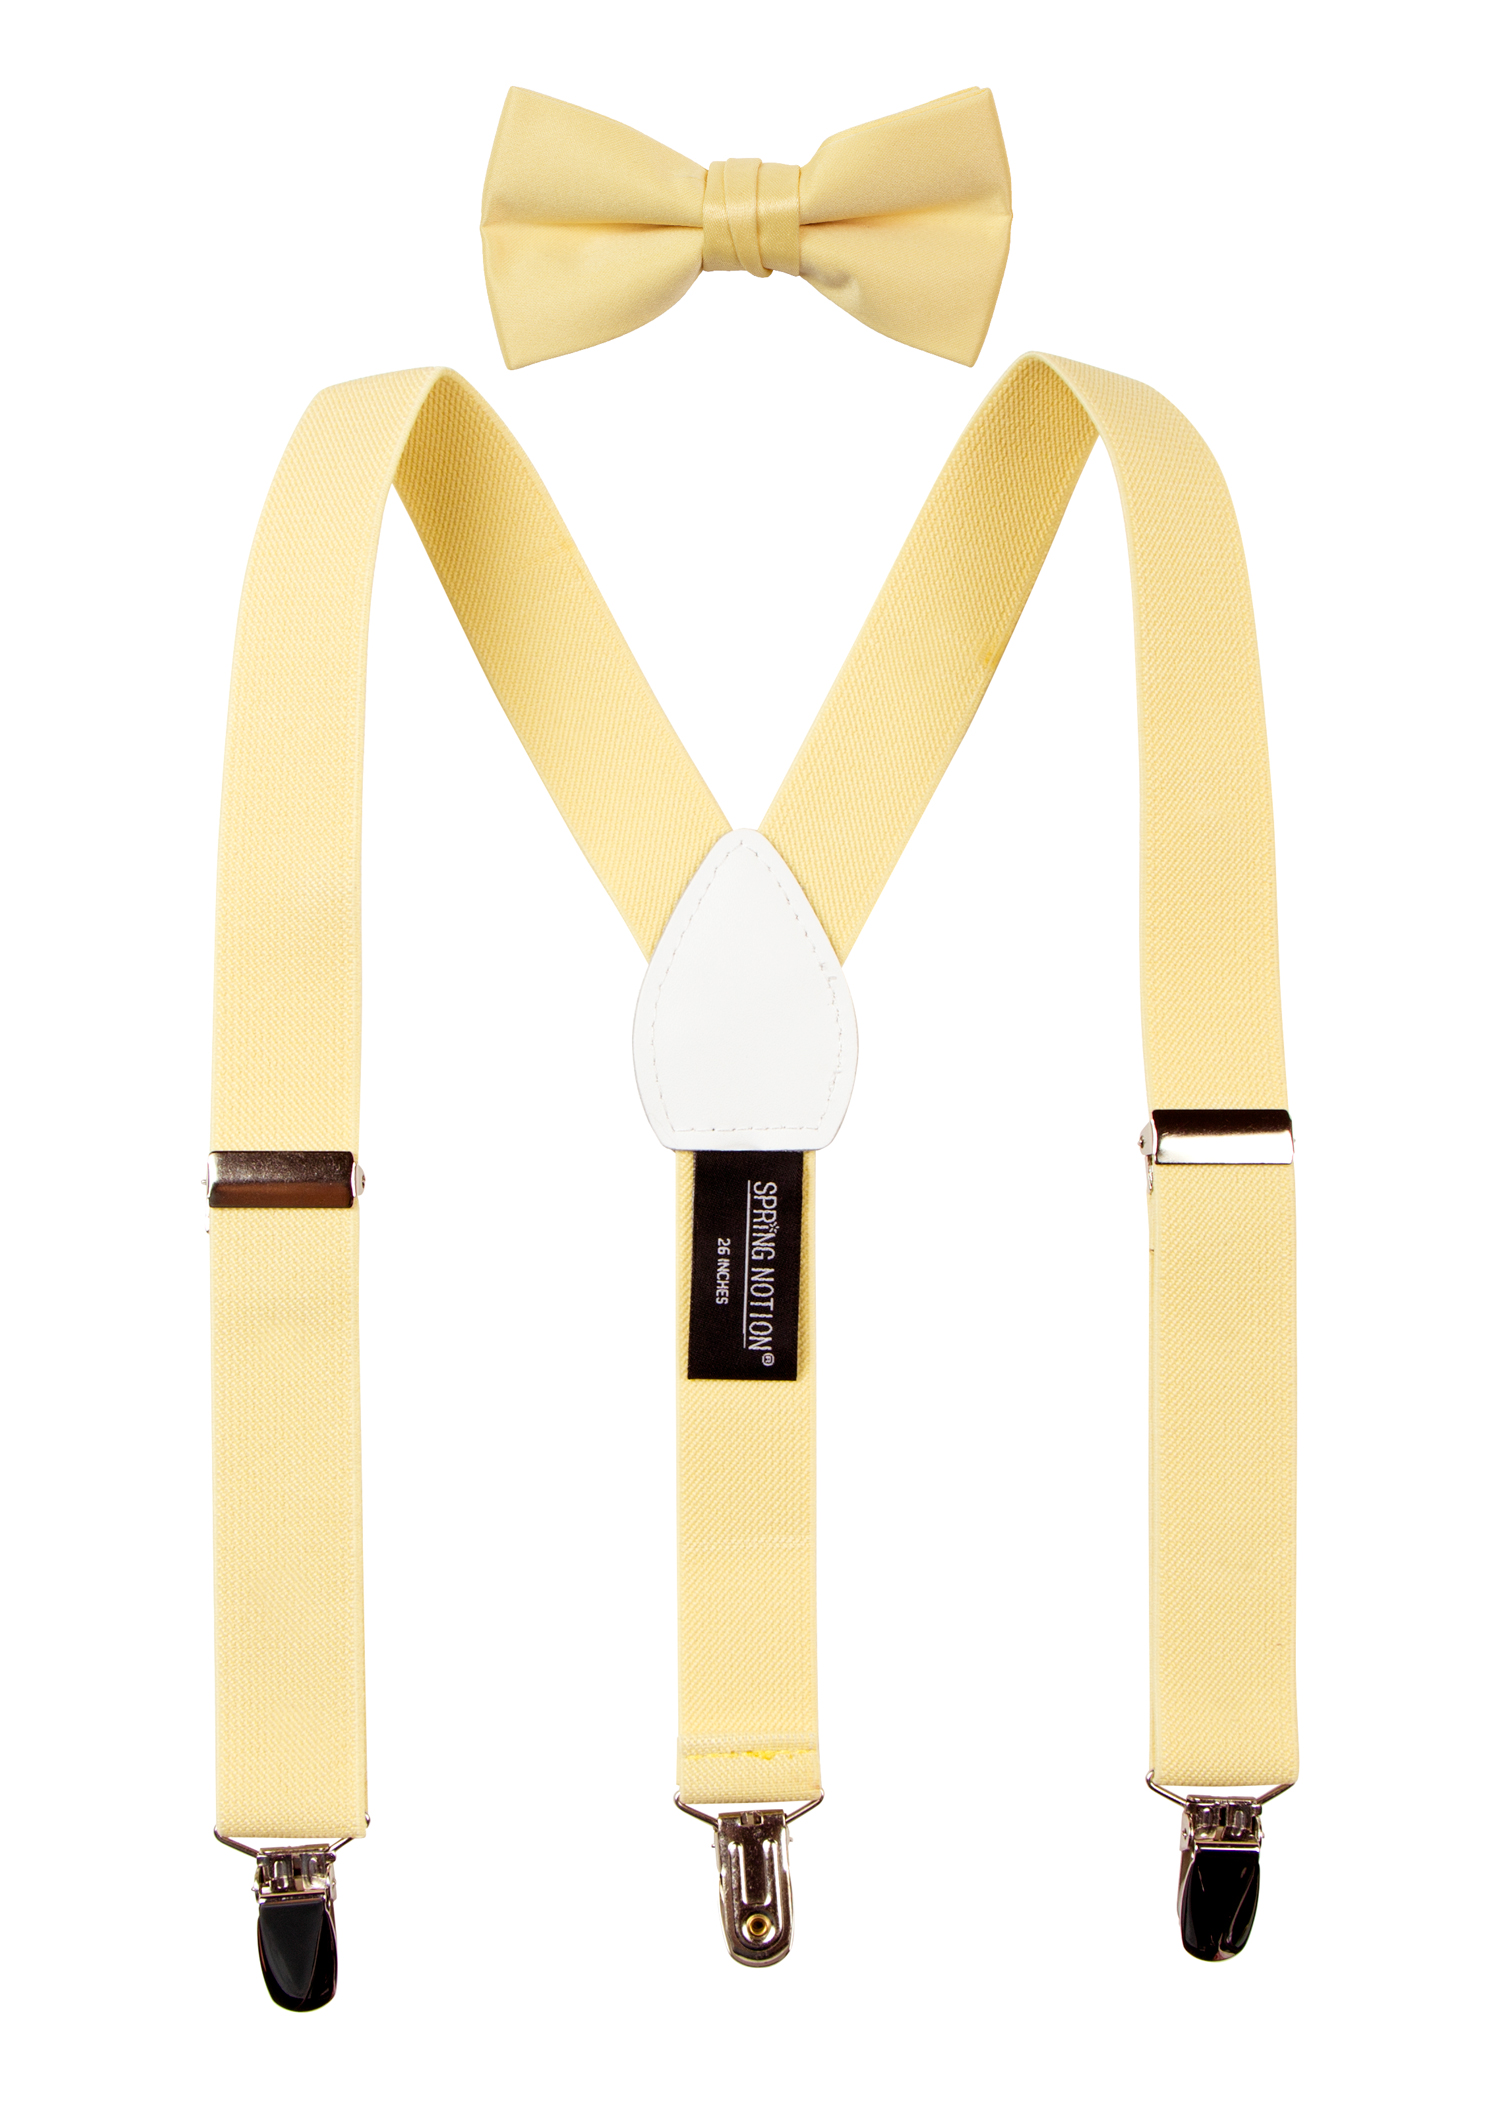 Spring Notion Boys' Suspenders and Solid Color Bowtie Set